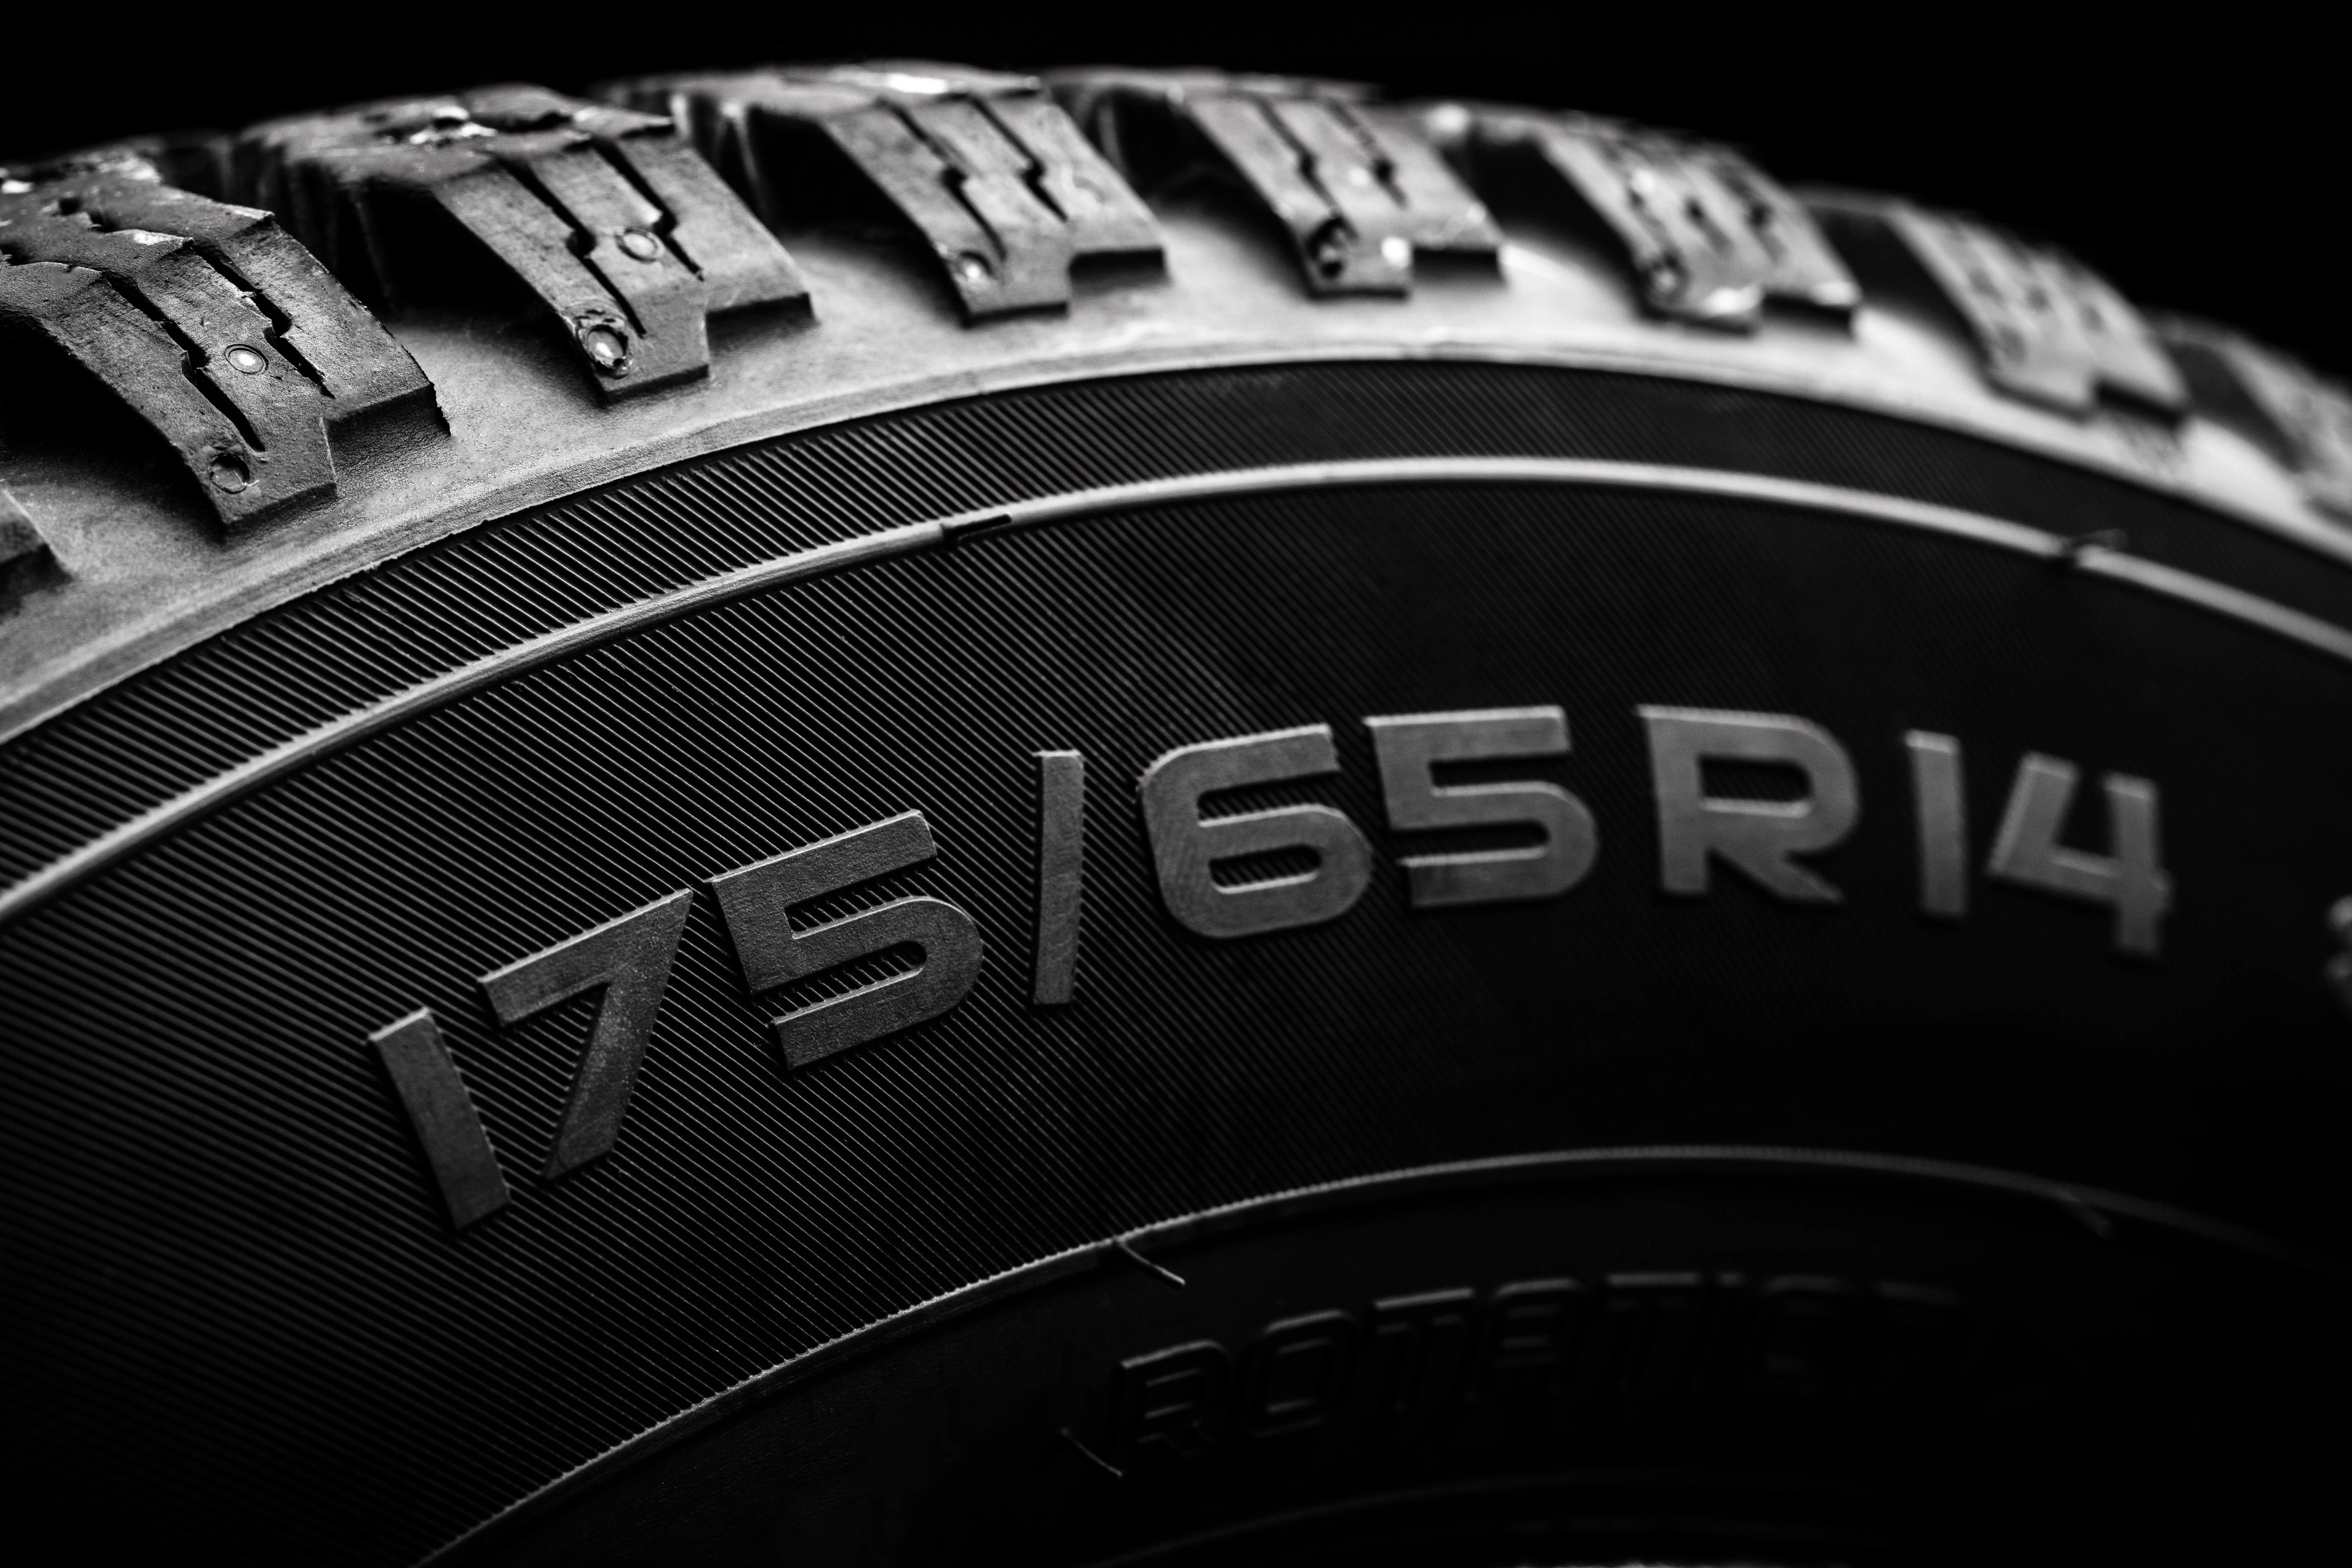 Close up of tire size markings and tread